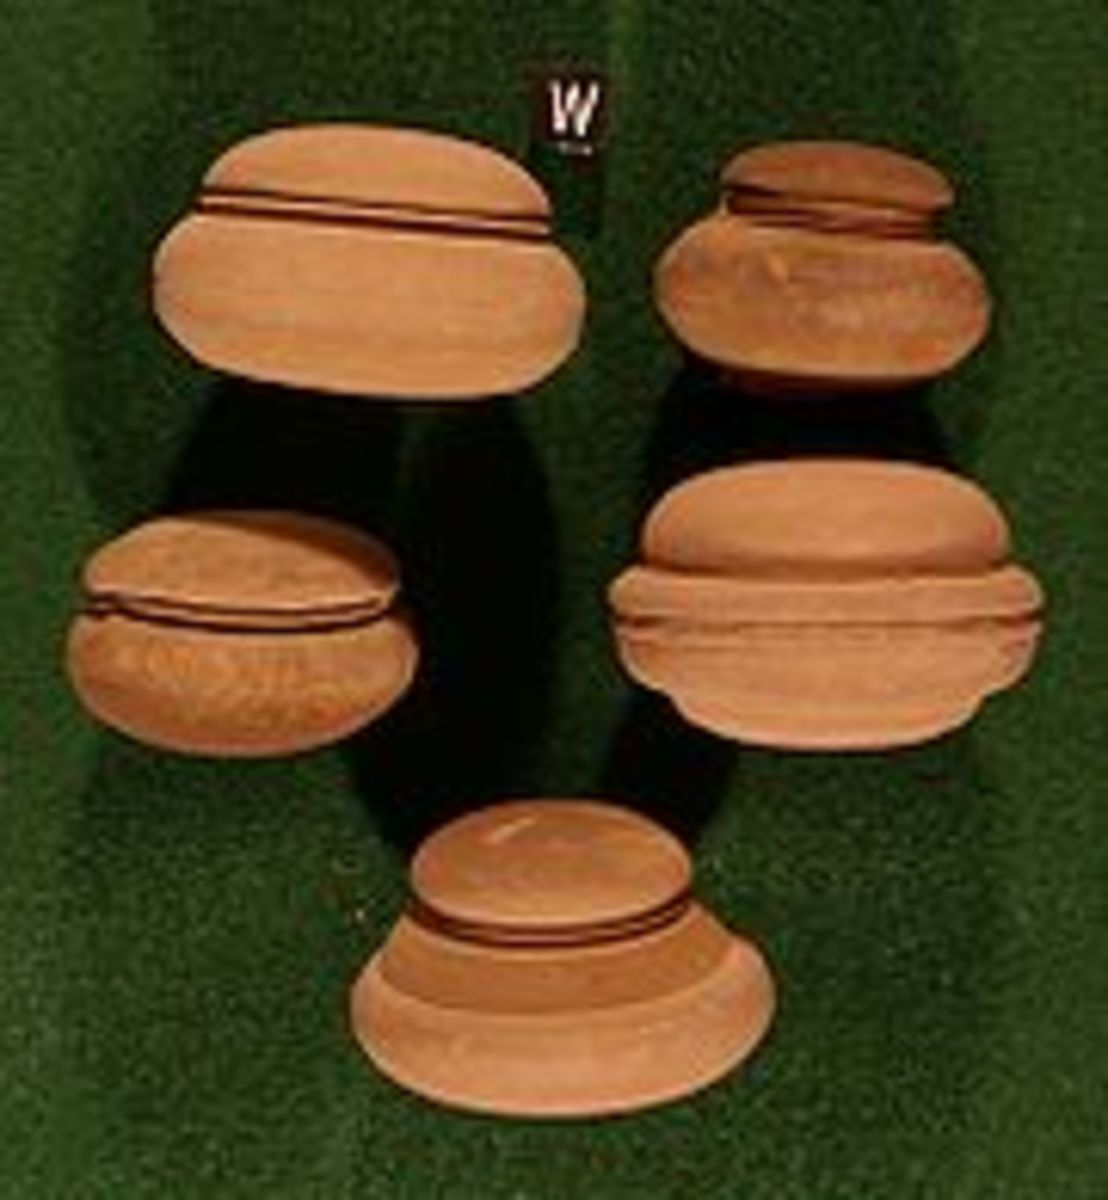 Pictures of similar calcareous concretions, which exhibit equatorial grooves, found within Schoharie County, New York.